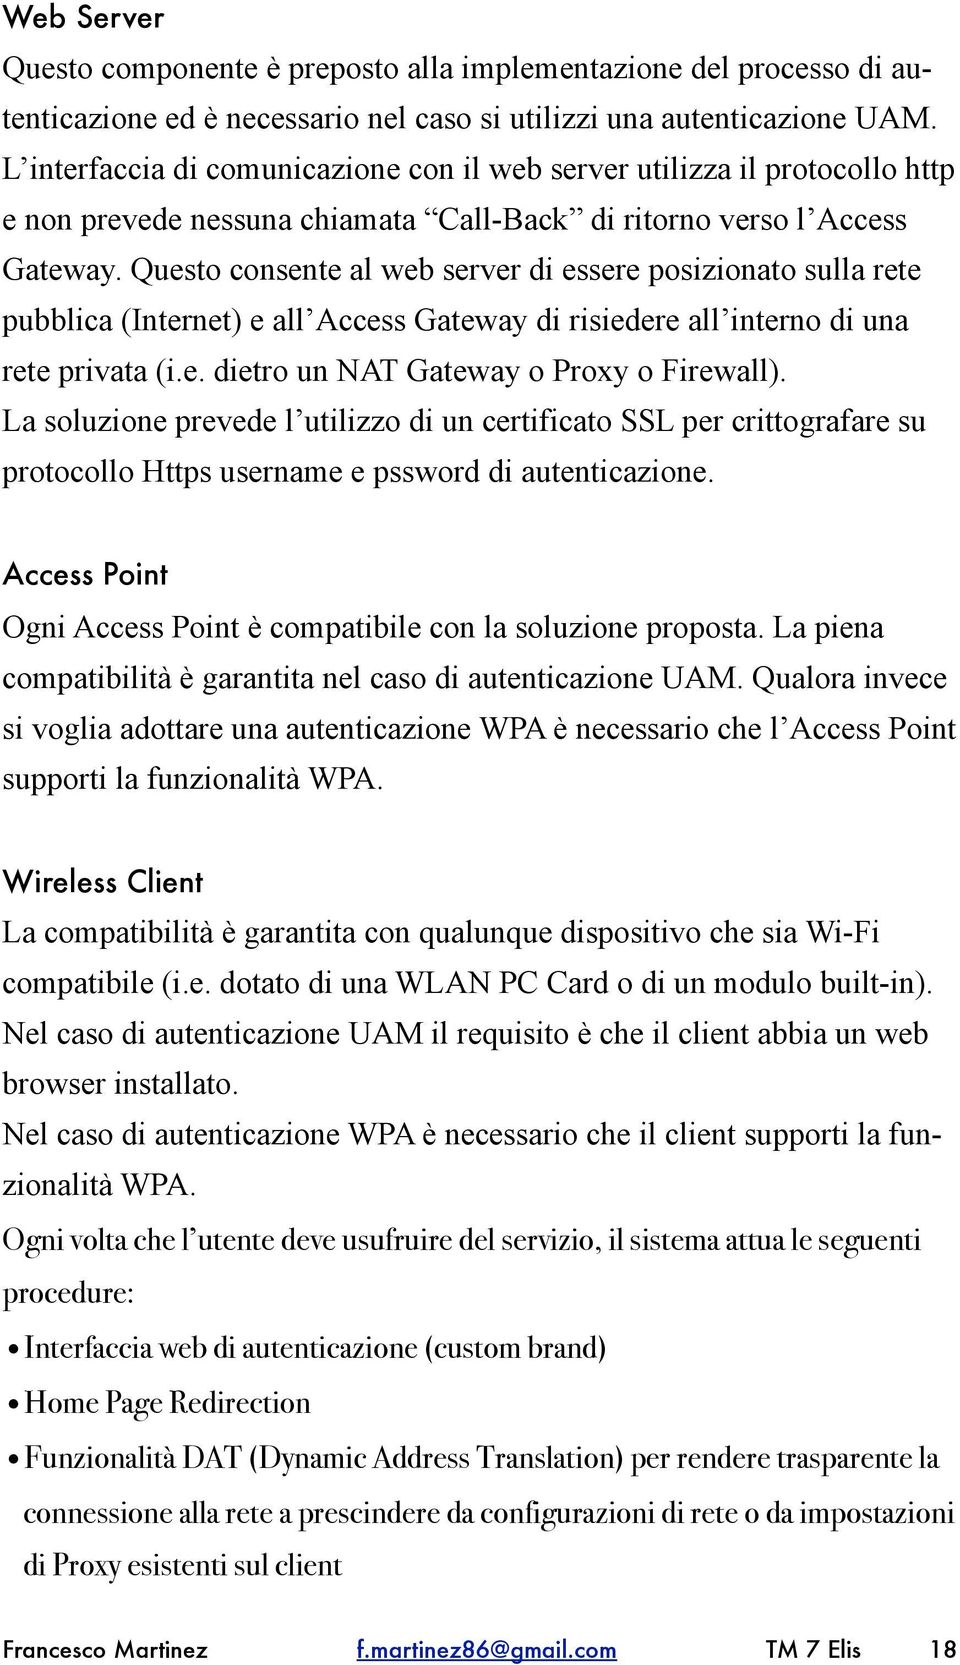 Questo consente al web server di essere posizionato sulla rete pubblica (Internet) e all Access Gateway di risiedere all interno di una rete privata (i.e. dietro un NAT Gateway o Proxy o Firewall).